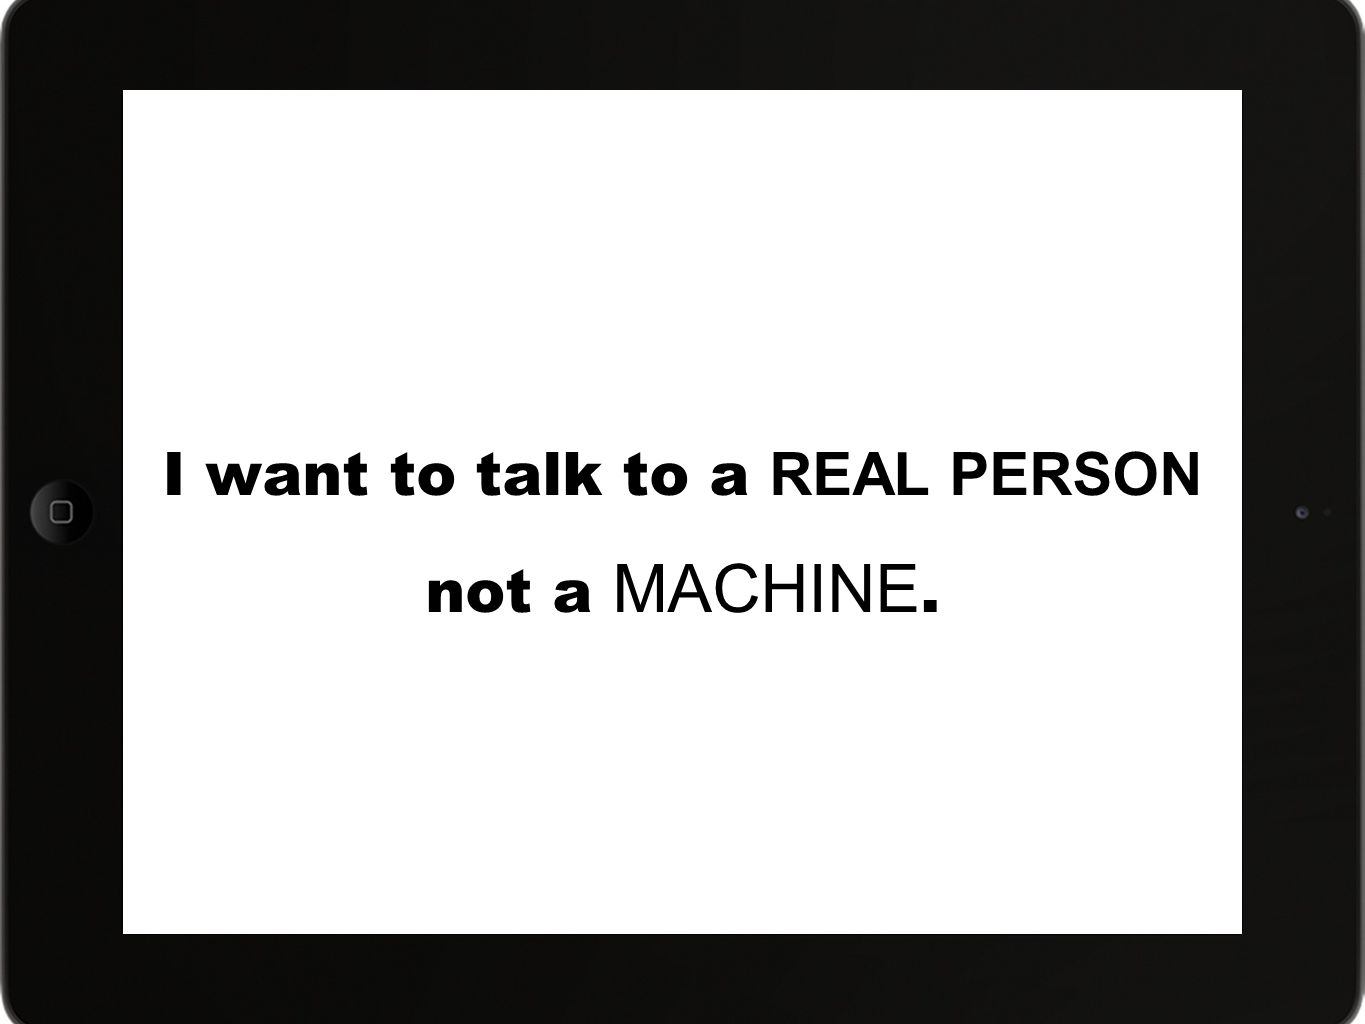 I want to talk to a REAL PERSON not a MACHINE.